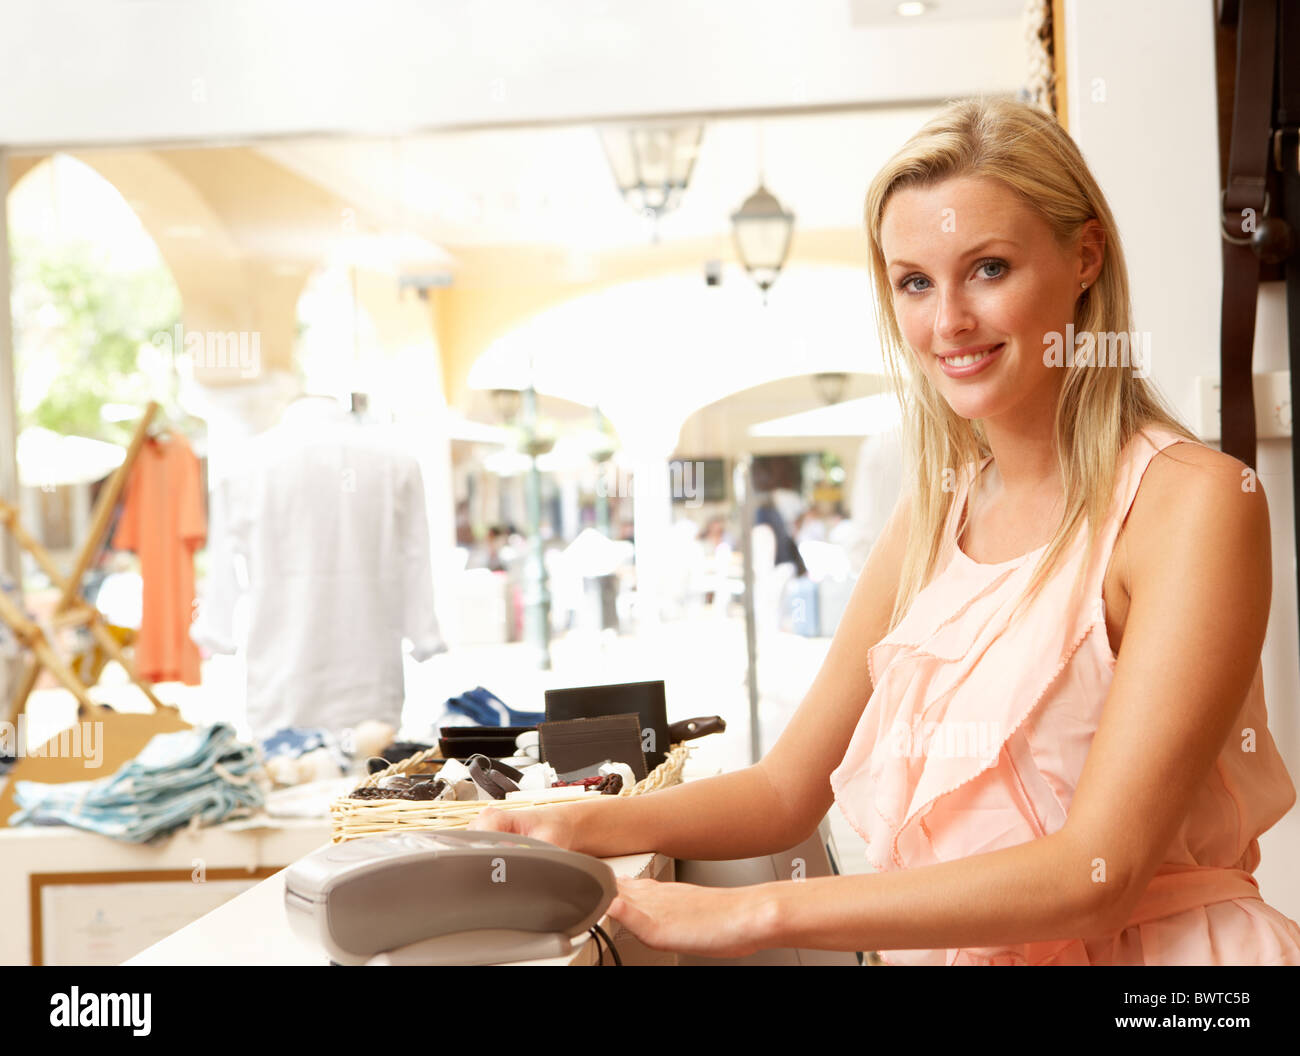 s assistant checkout clothing store customers stock photo female s assistant at checkout clothing store stock photo